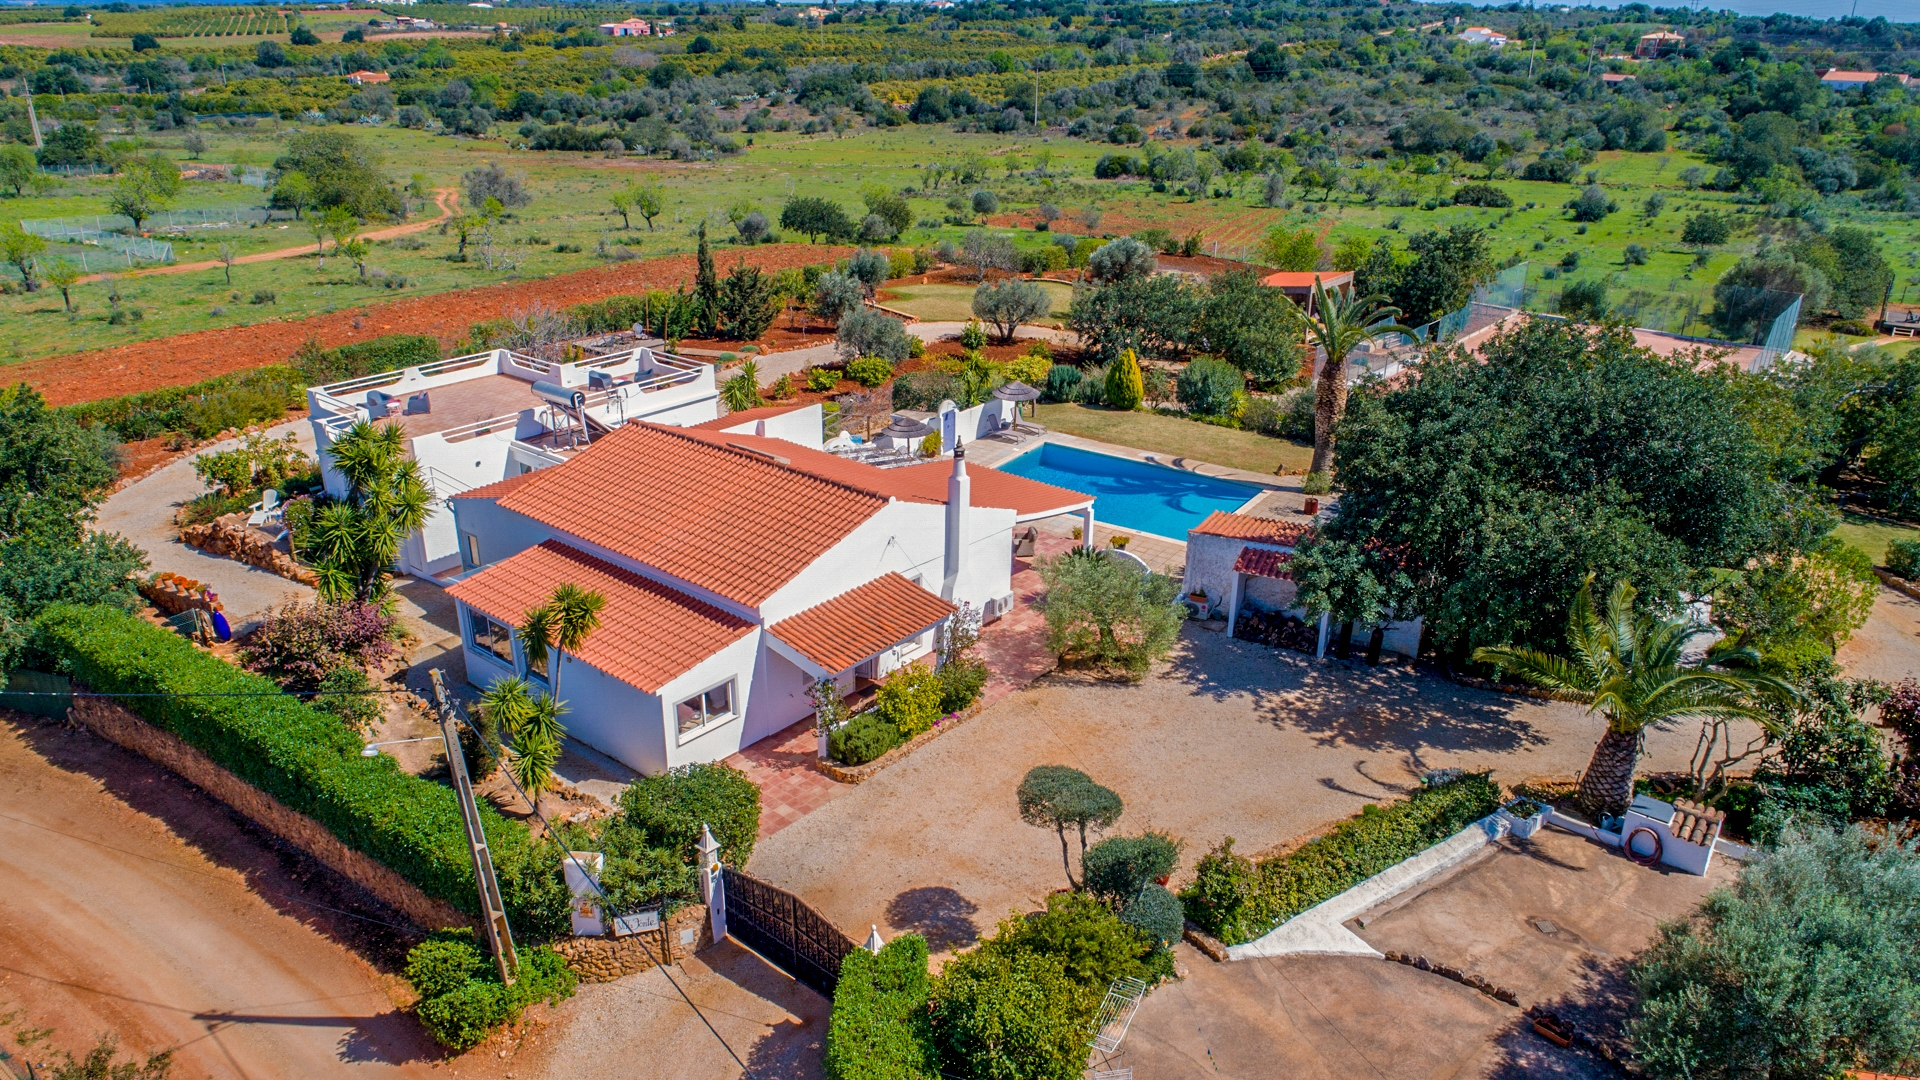 Charming country house completely renovated with 5 bedrooms, rental possibility, tennis court in Alcantarilha near Silves | VM1029